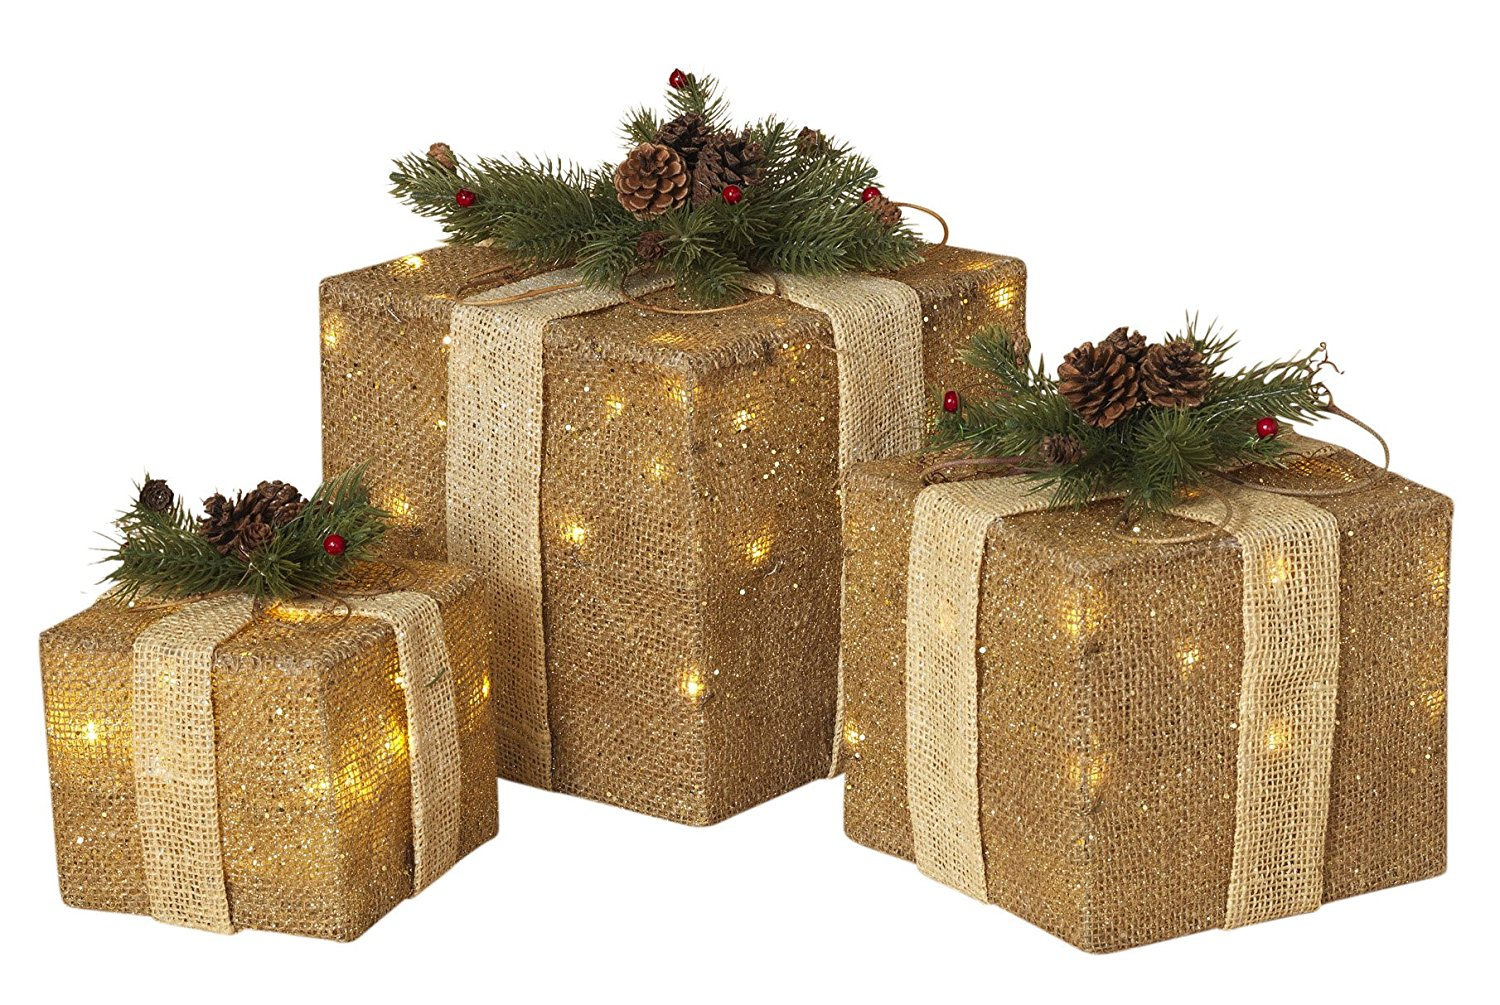 get quotations set of 3 large lighted burlap holiday gift boxes indooroutdoor christmas decoration - Decorative Christmas Gift Boxes With Lids